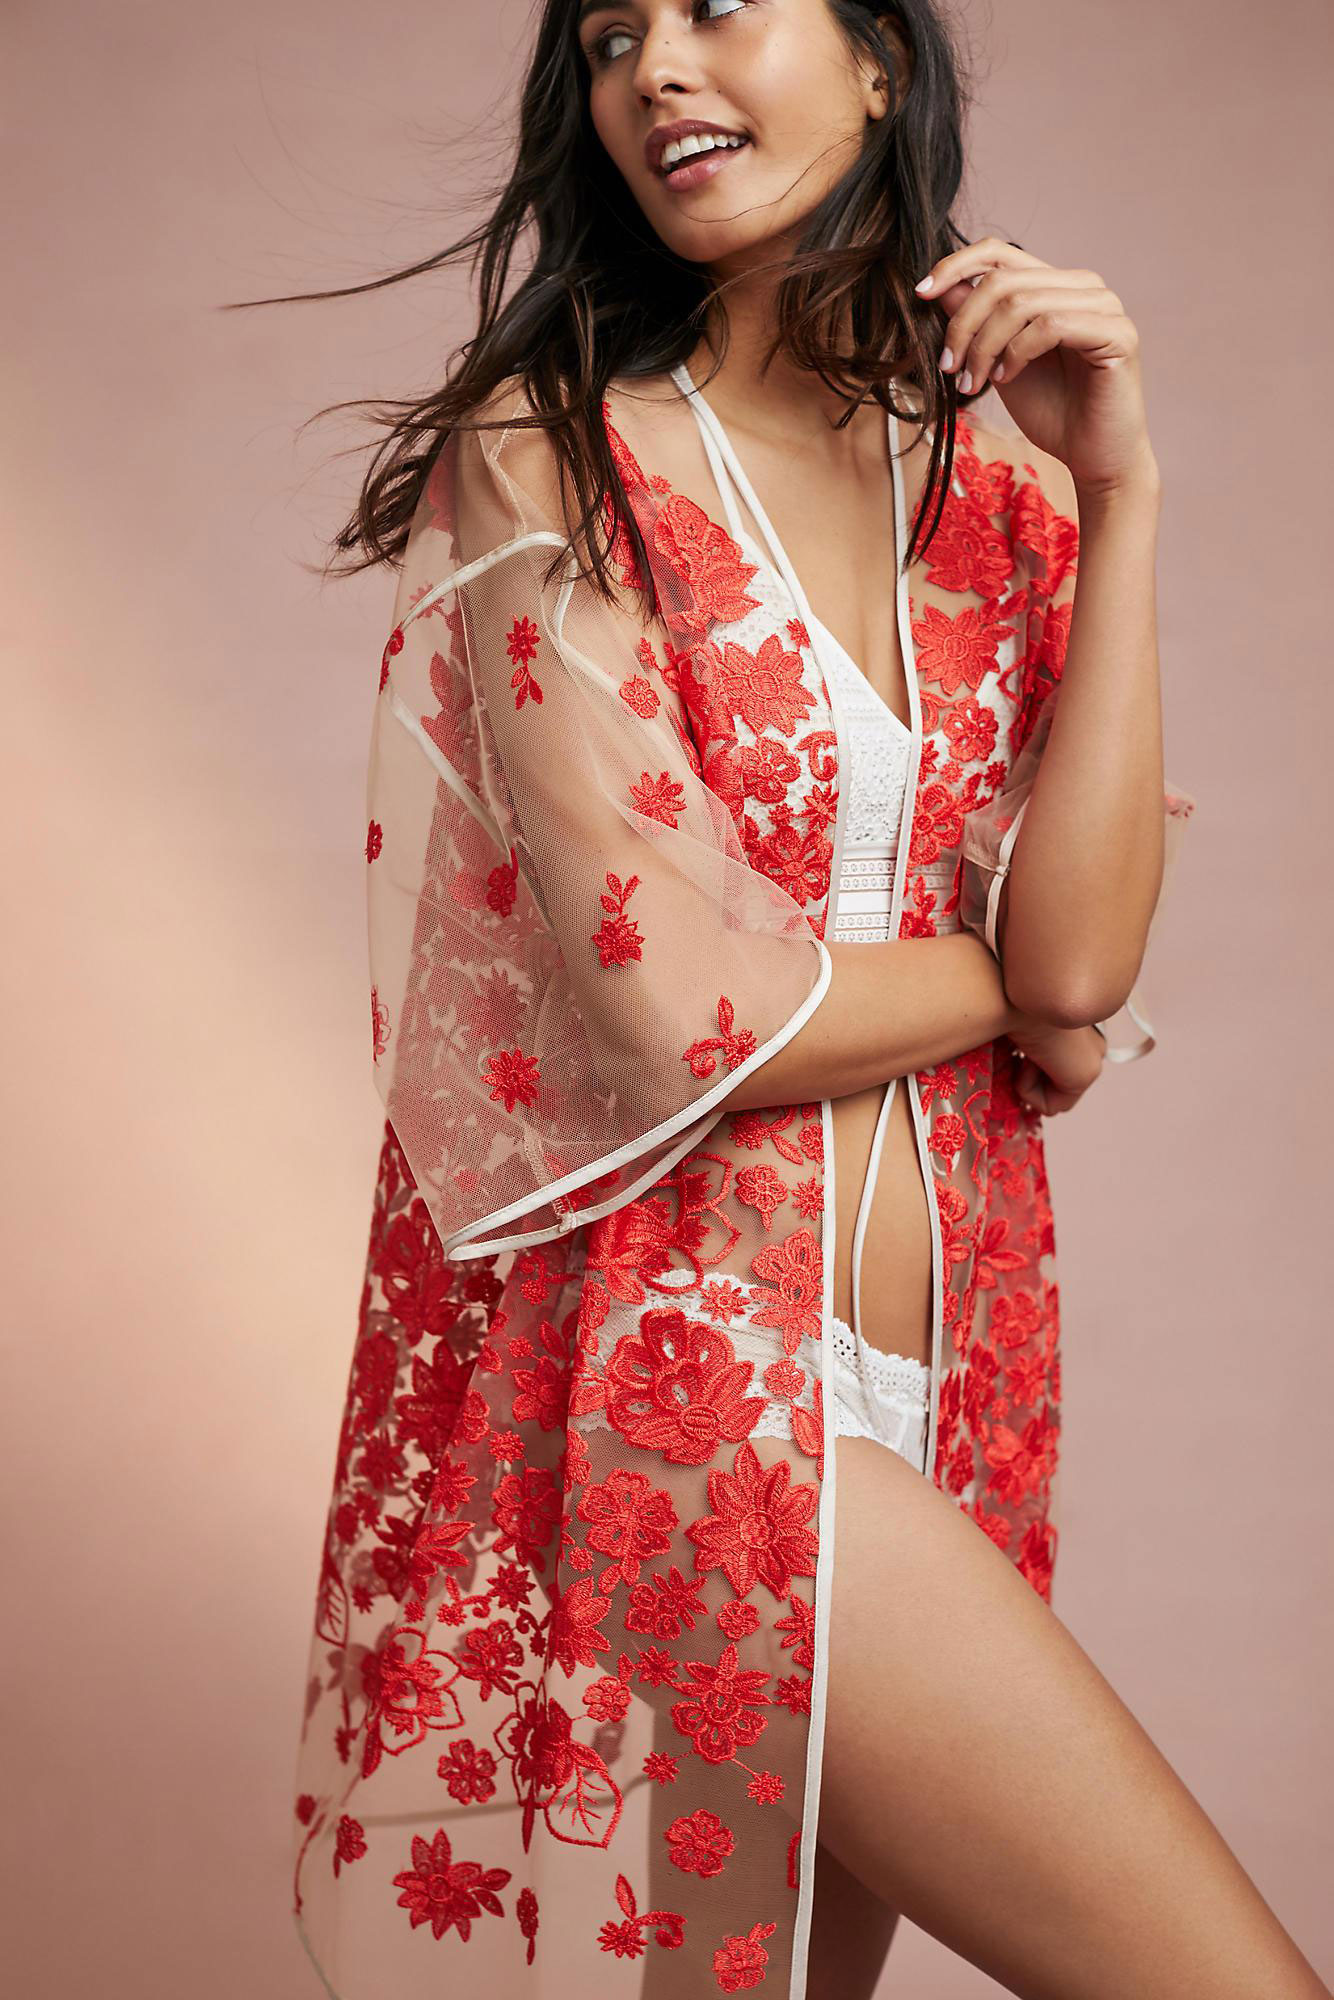 Anthropologie red rose embroidery robe valentine's day gift ideas